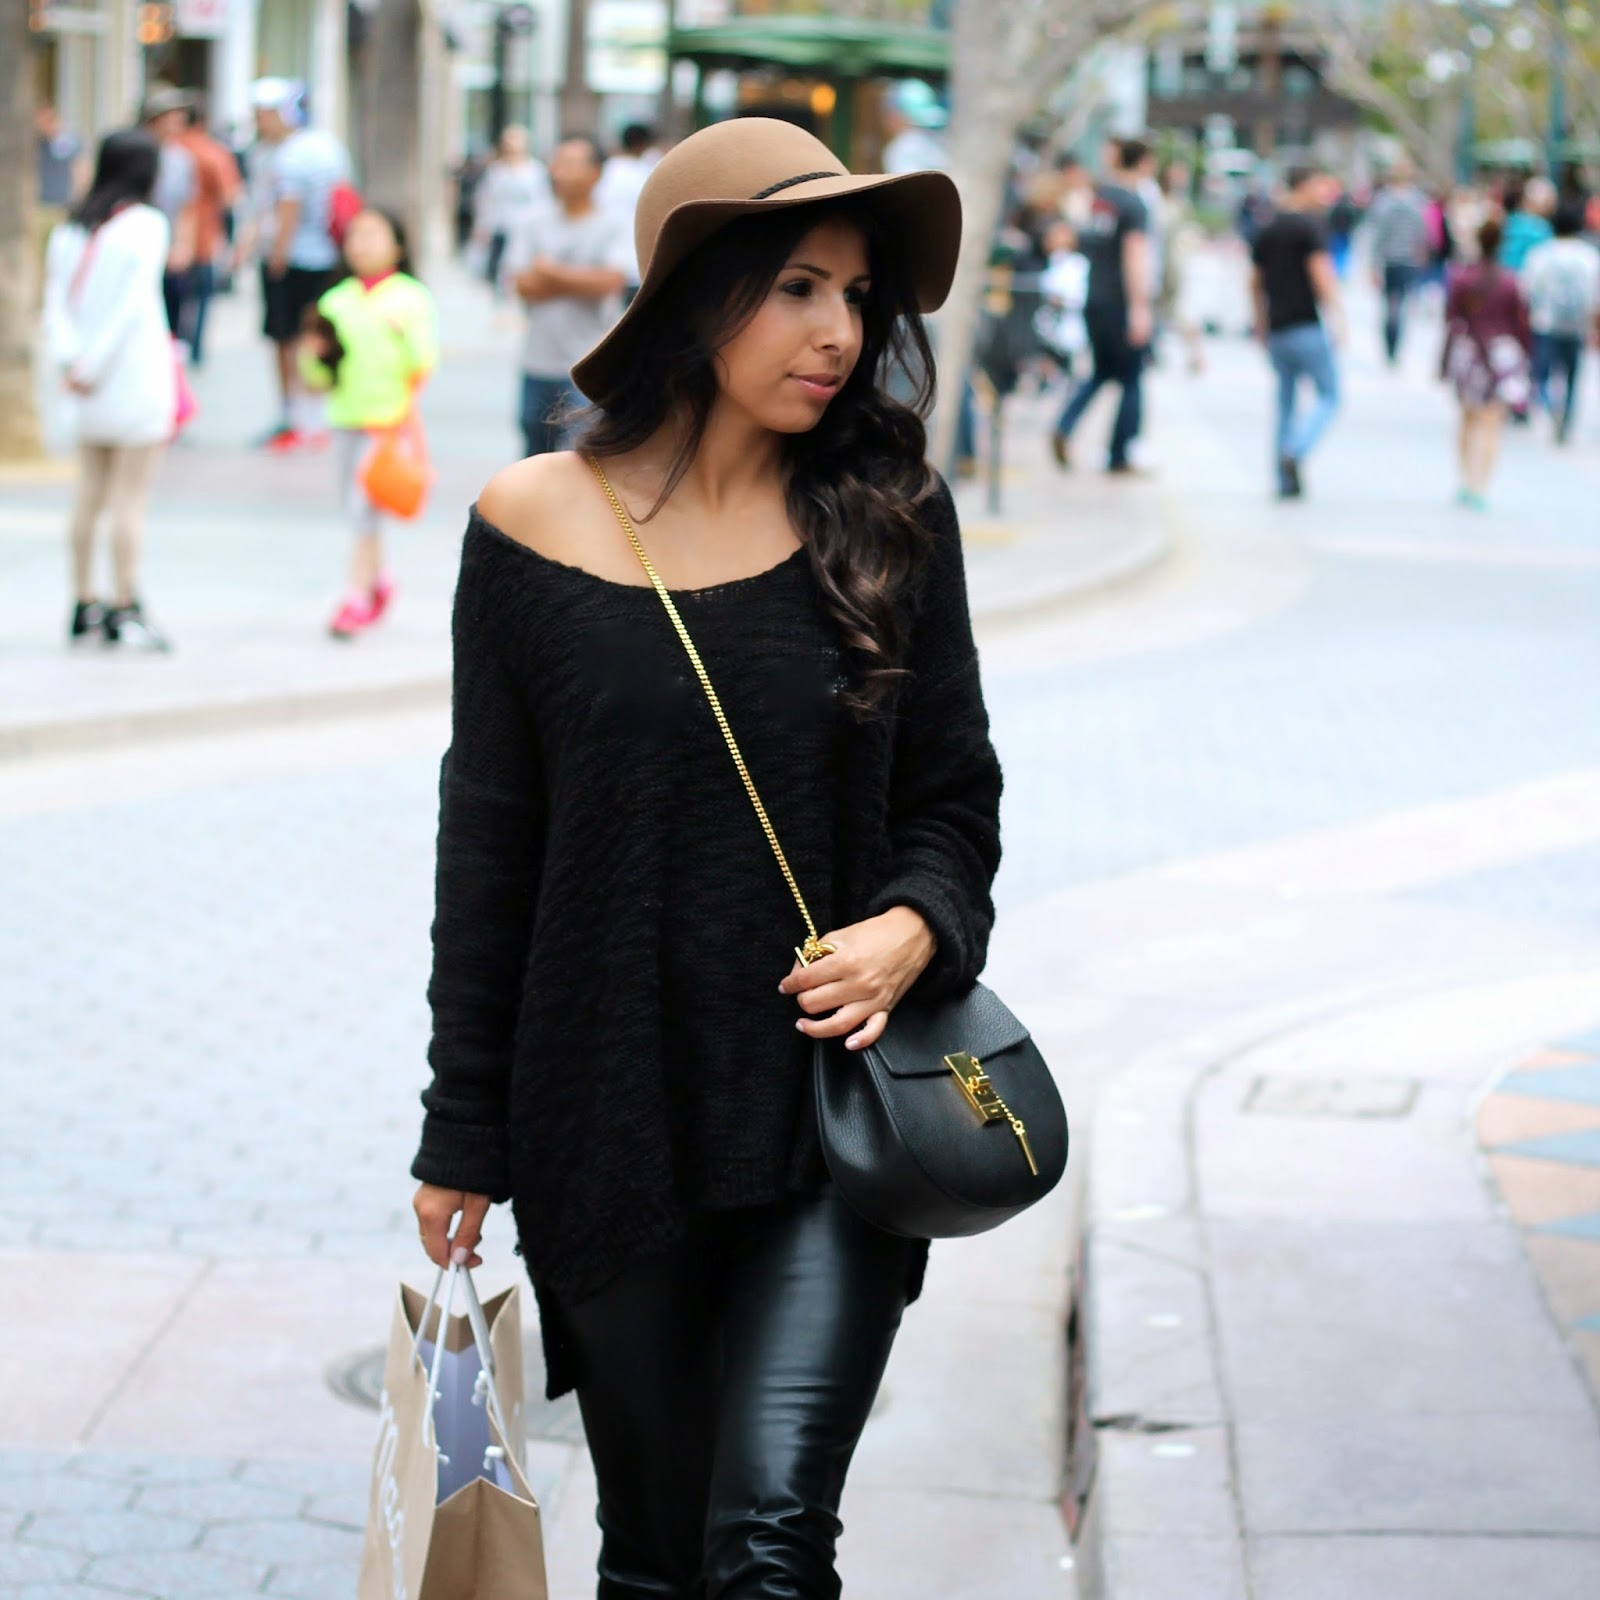 zara leather pants, rainy day shopping, chloe drew bag, what to wear shopping, how to wear hat, floppy hat